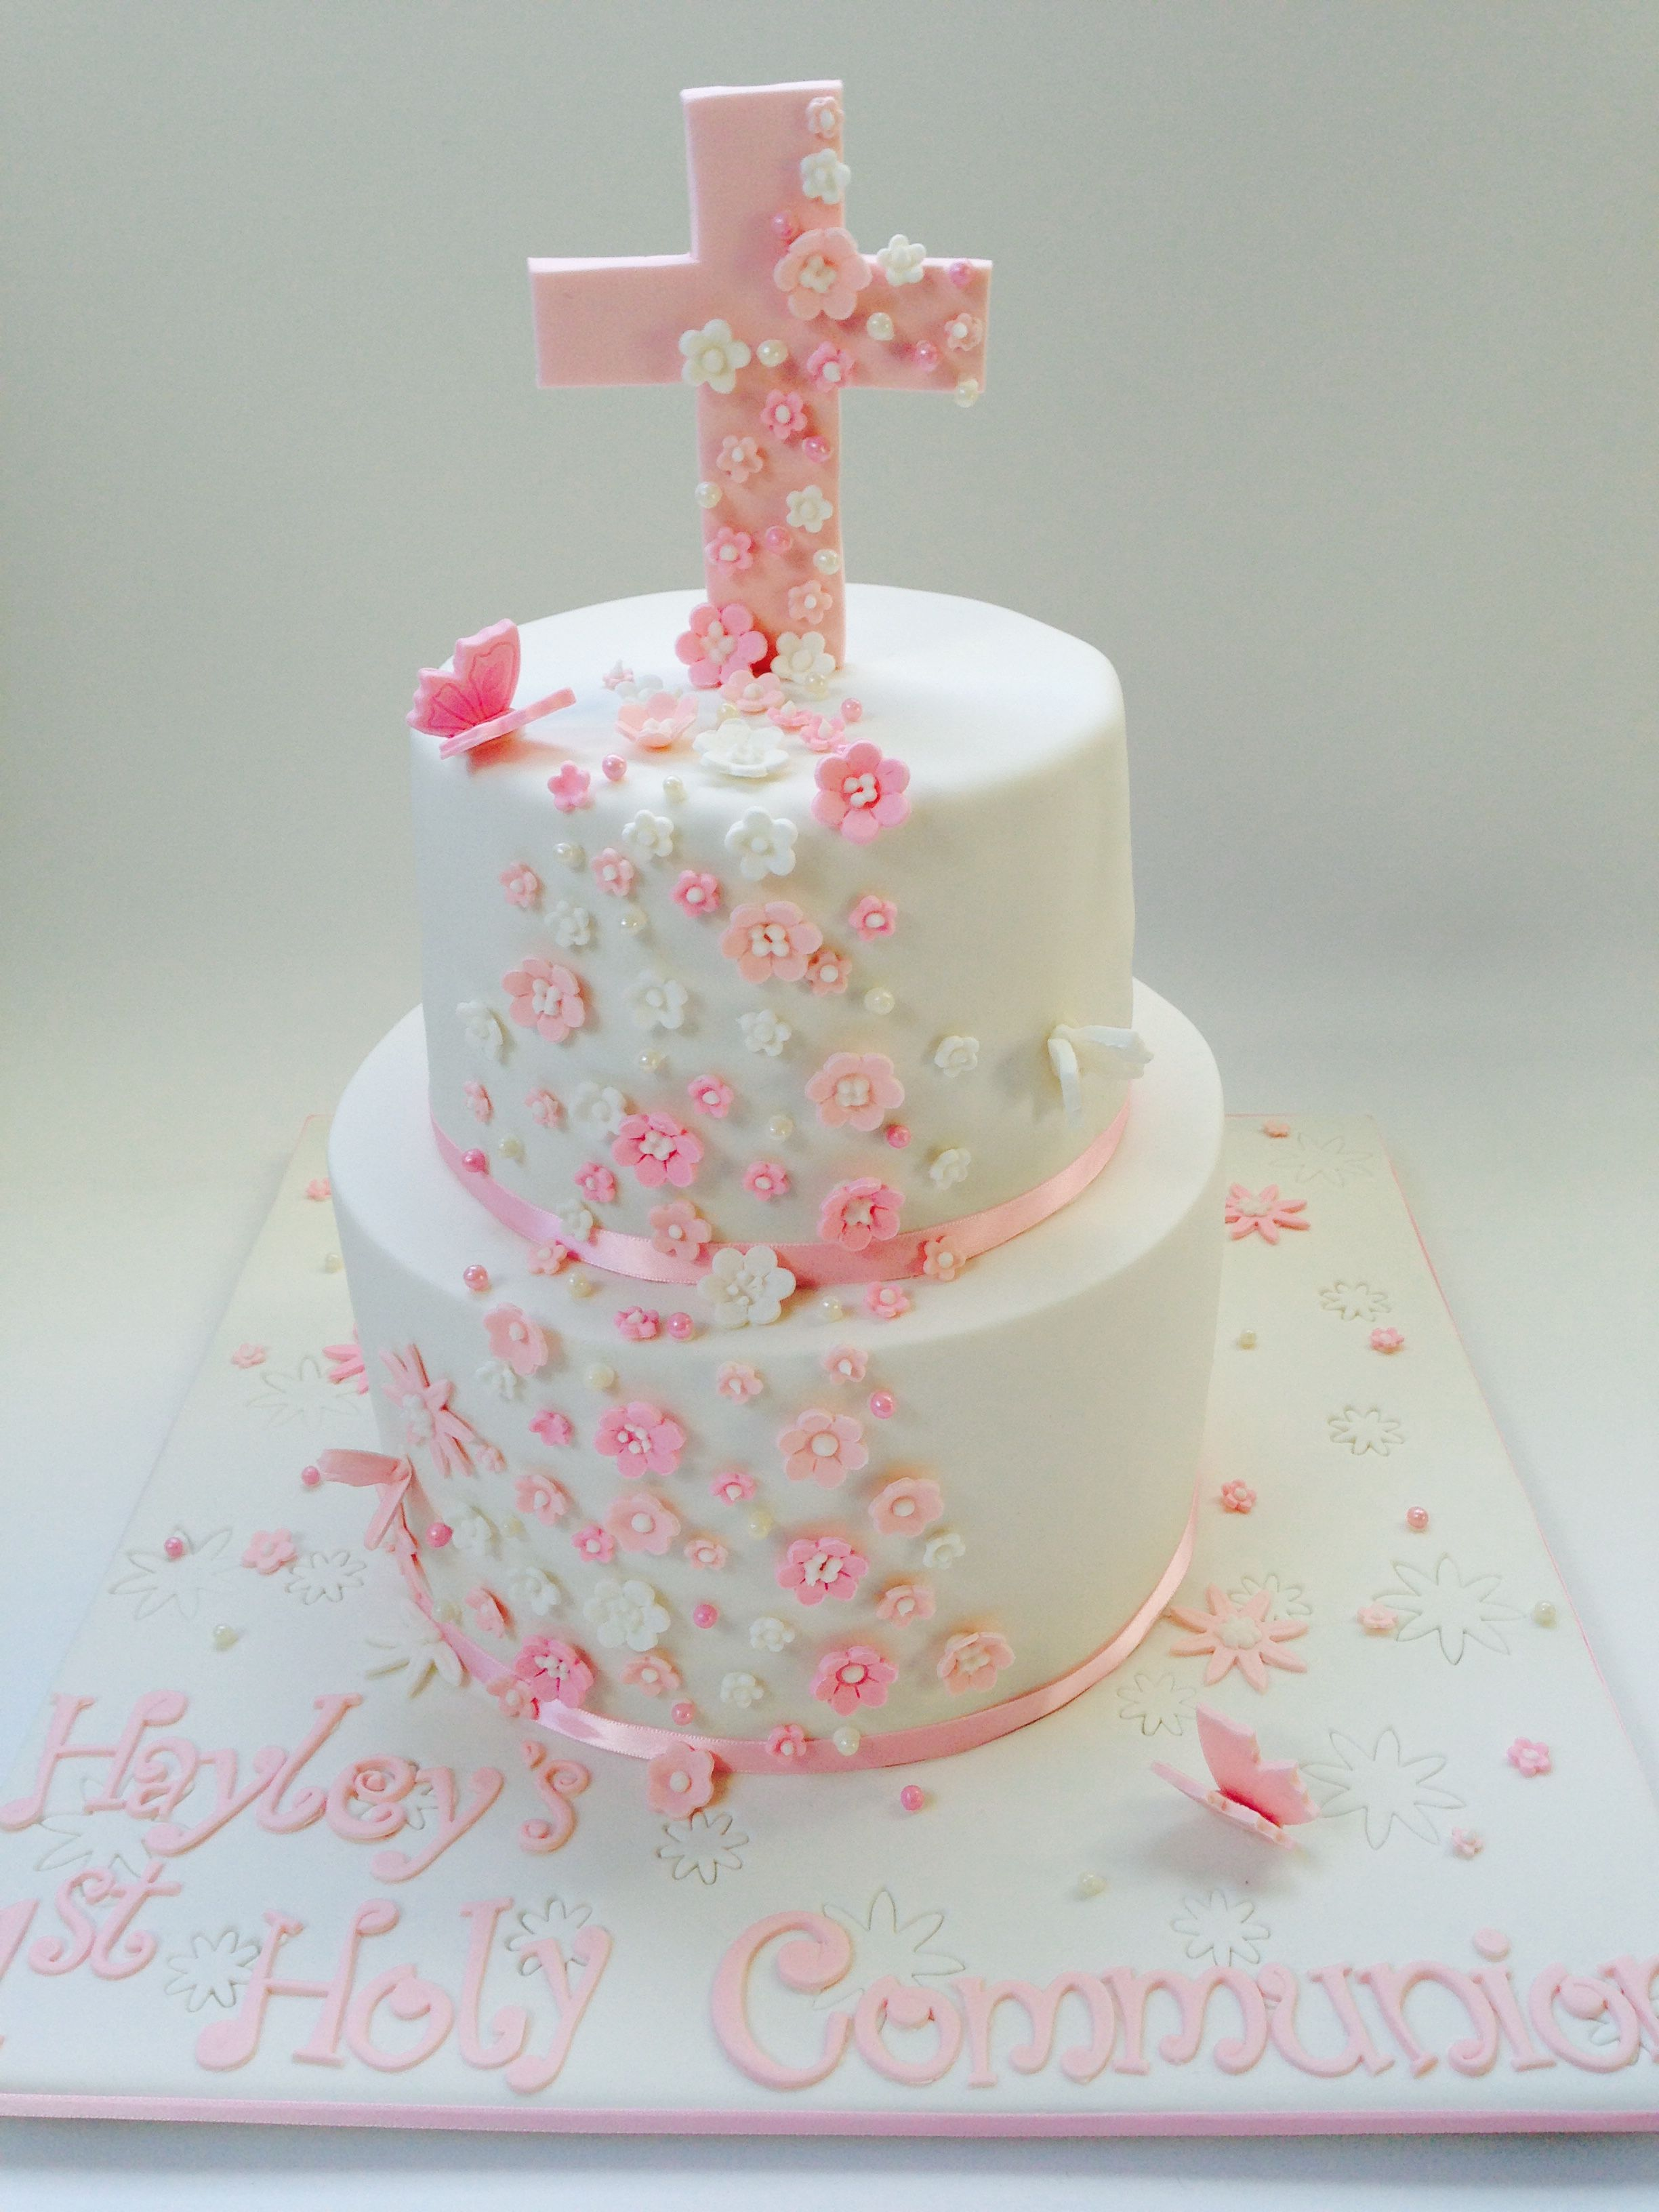 Girlie Communion Cake Cake By Mimissweettreats Communion Cakes